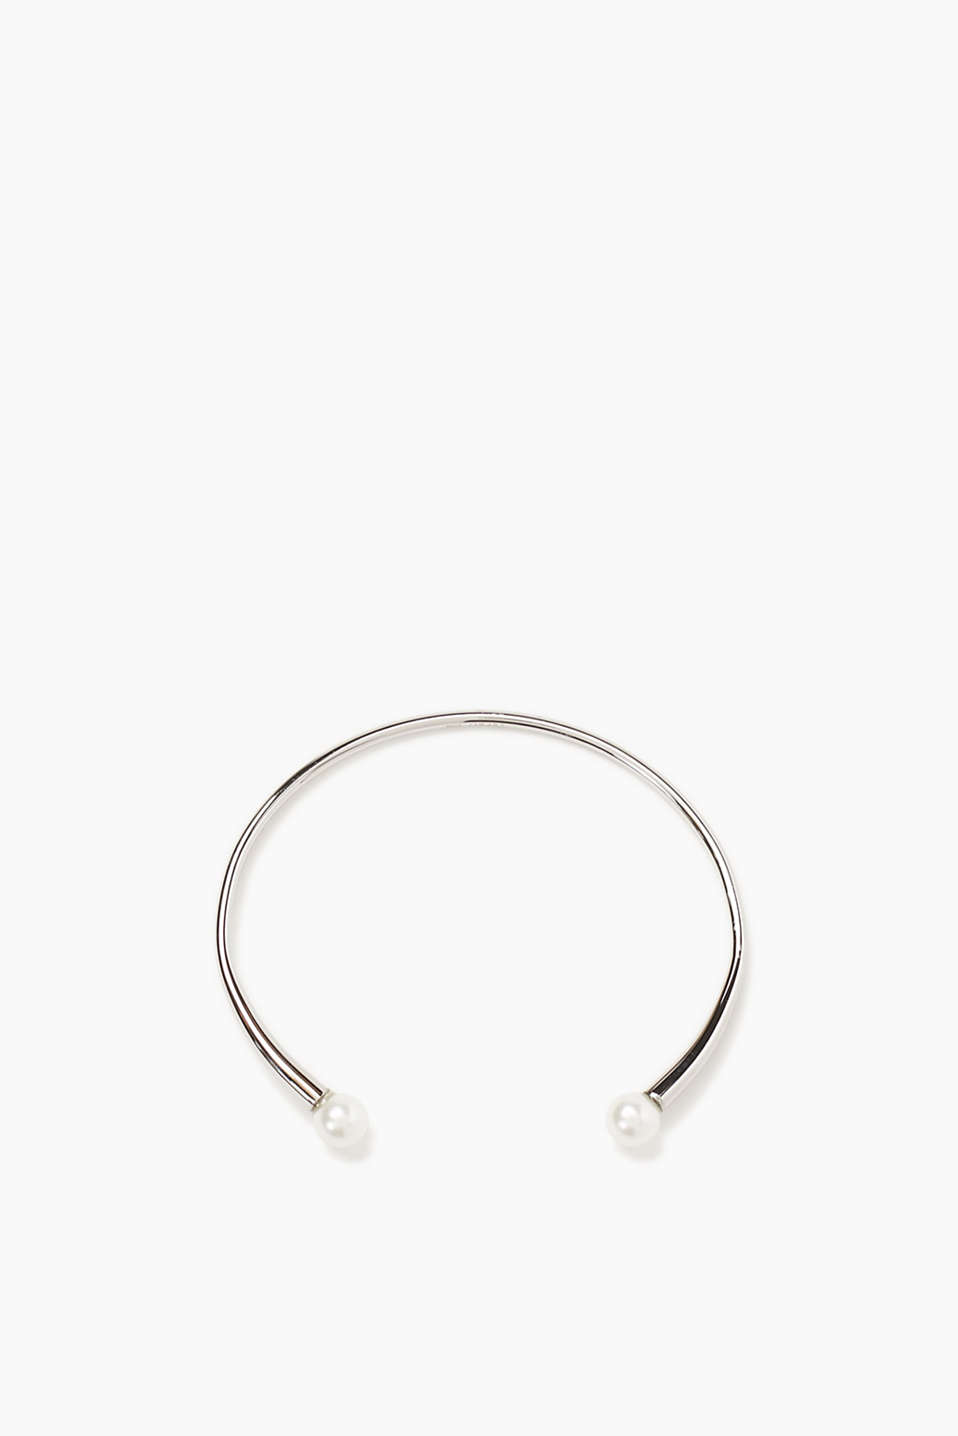 Esprit - Stainless steel bangle with beads